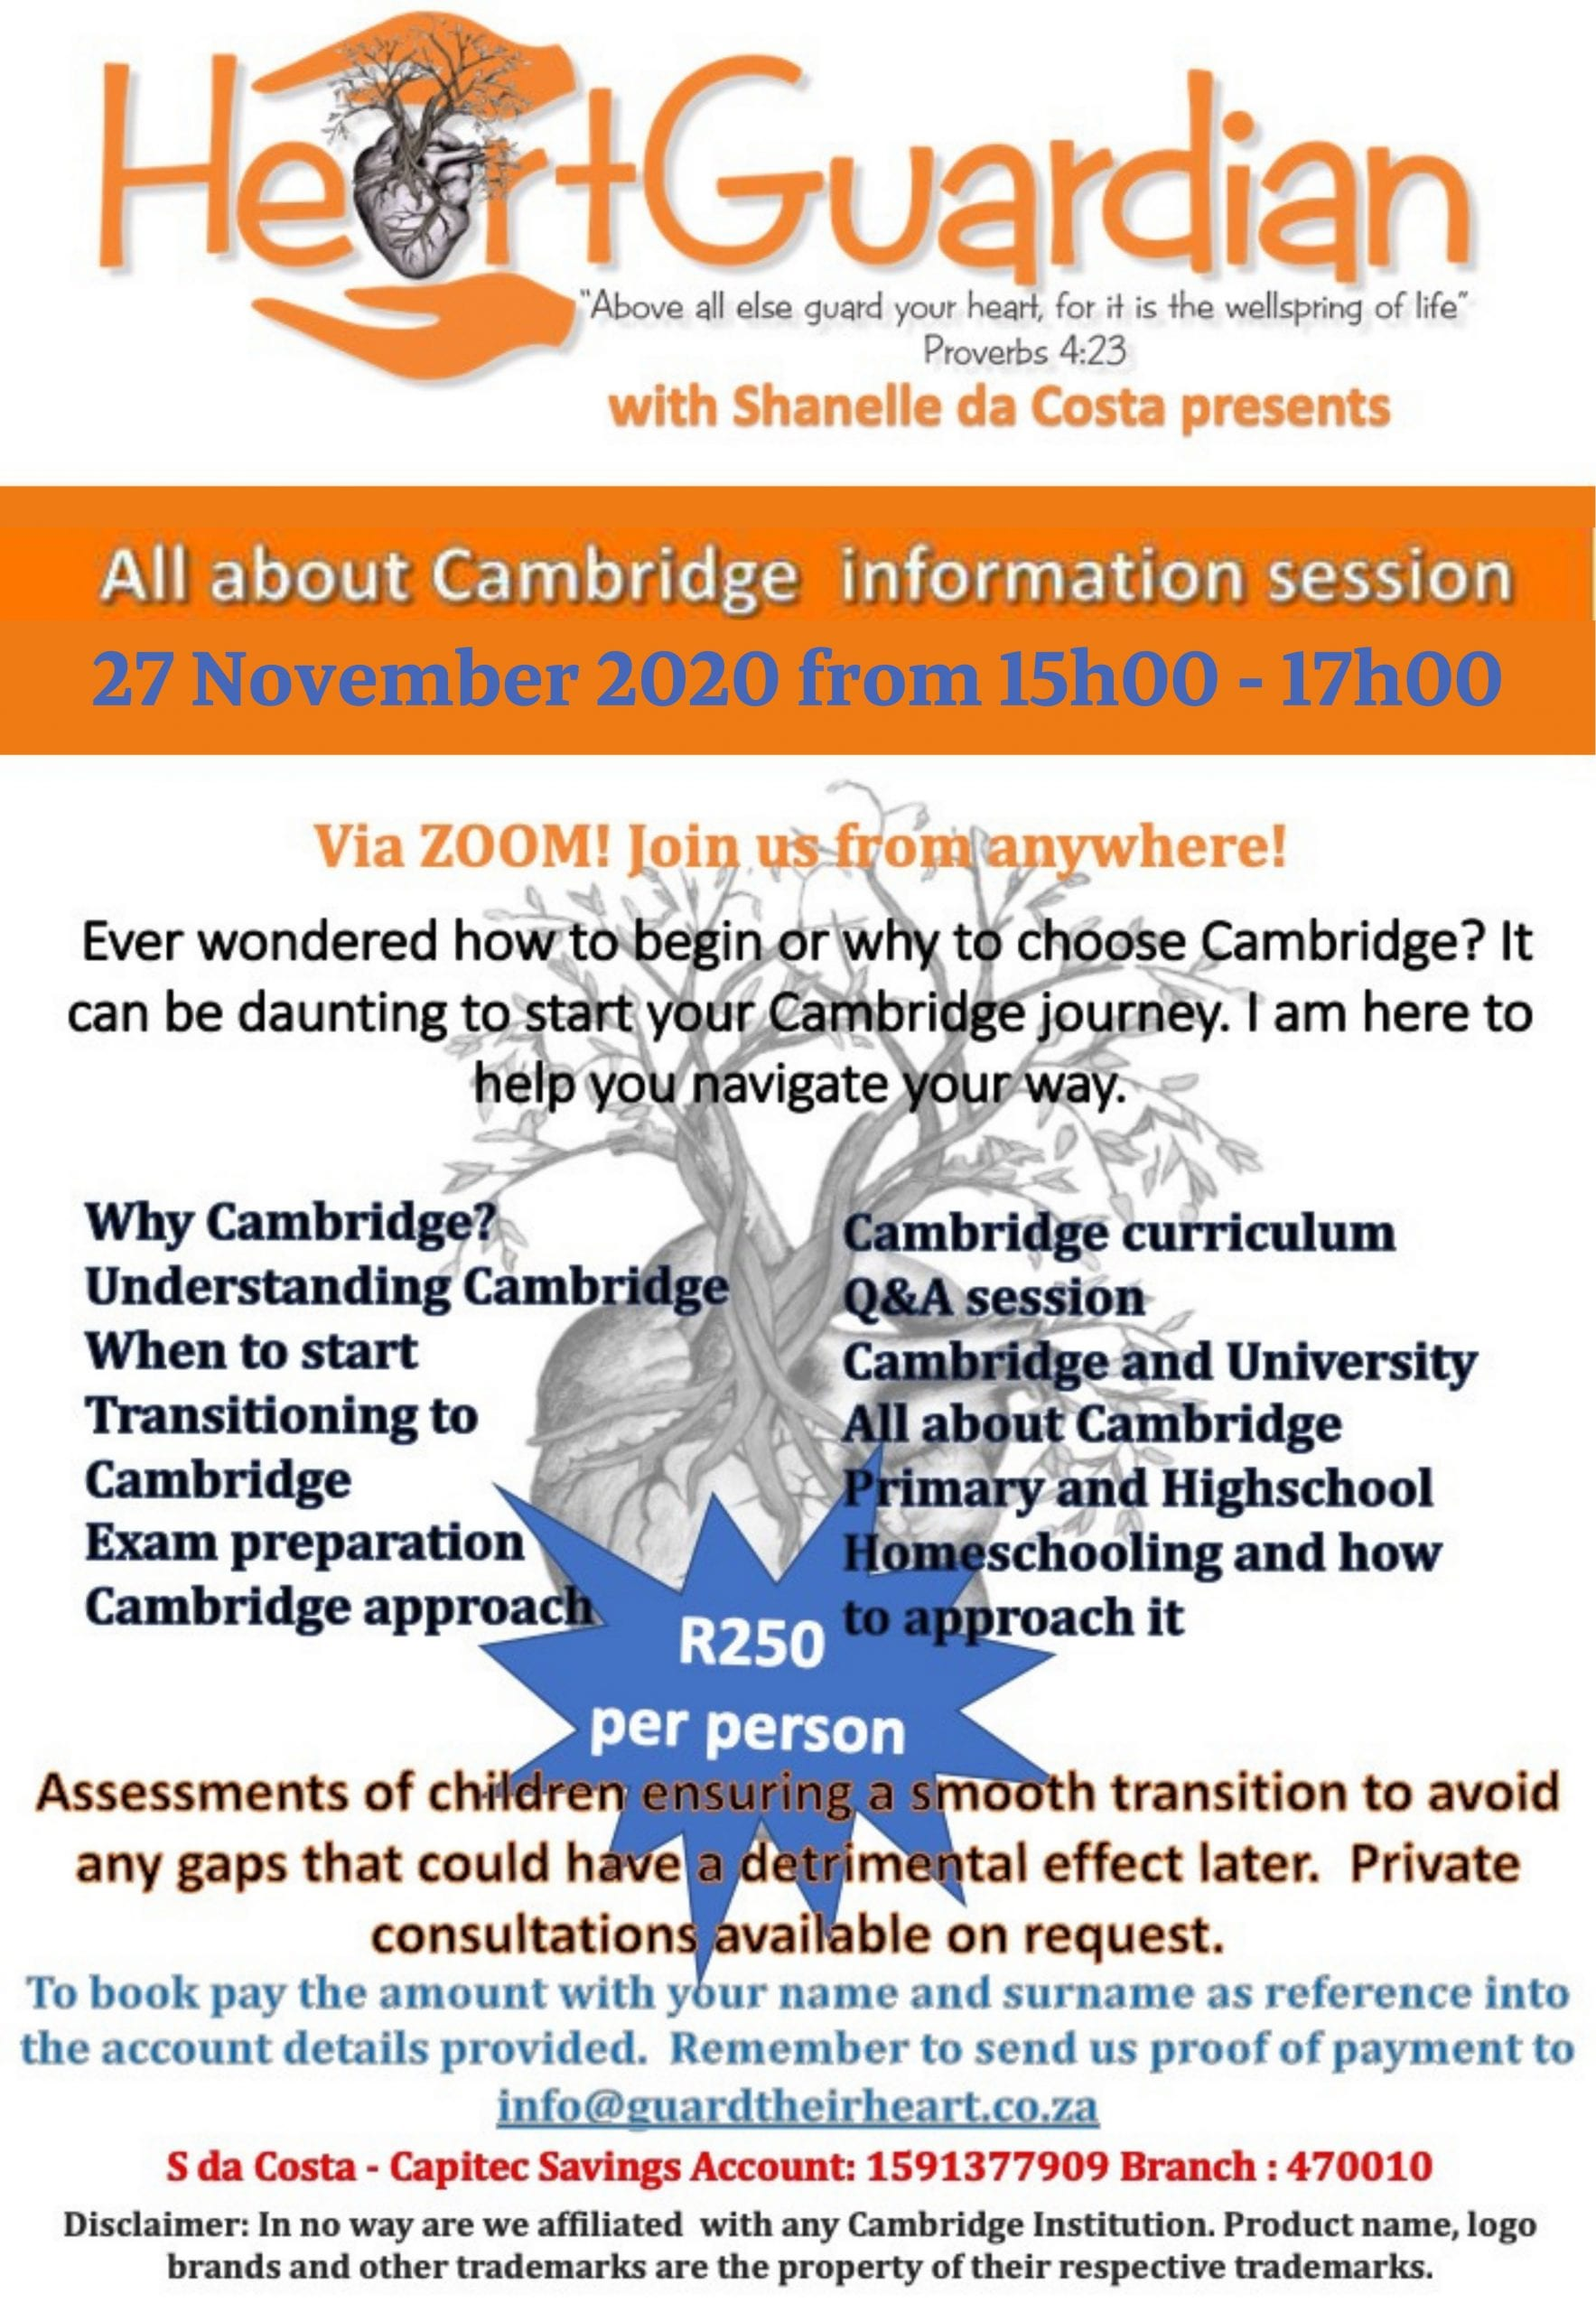 All About Cambridge Informational Session Zoom Call – 27 November 2020 from 15h00 – 17h00